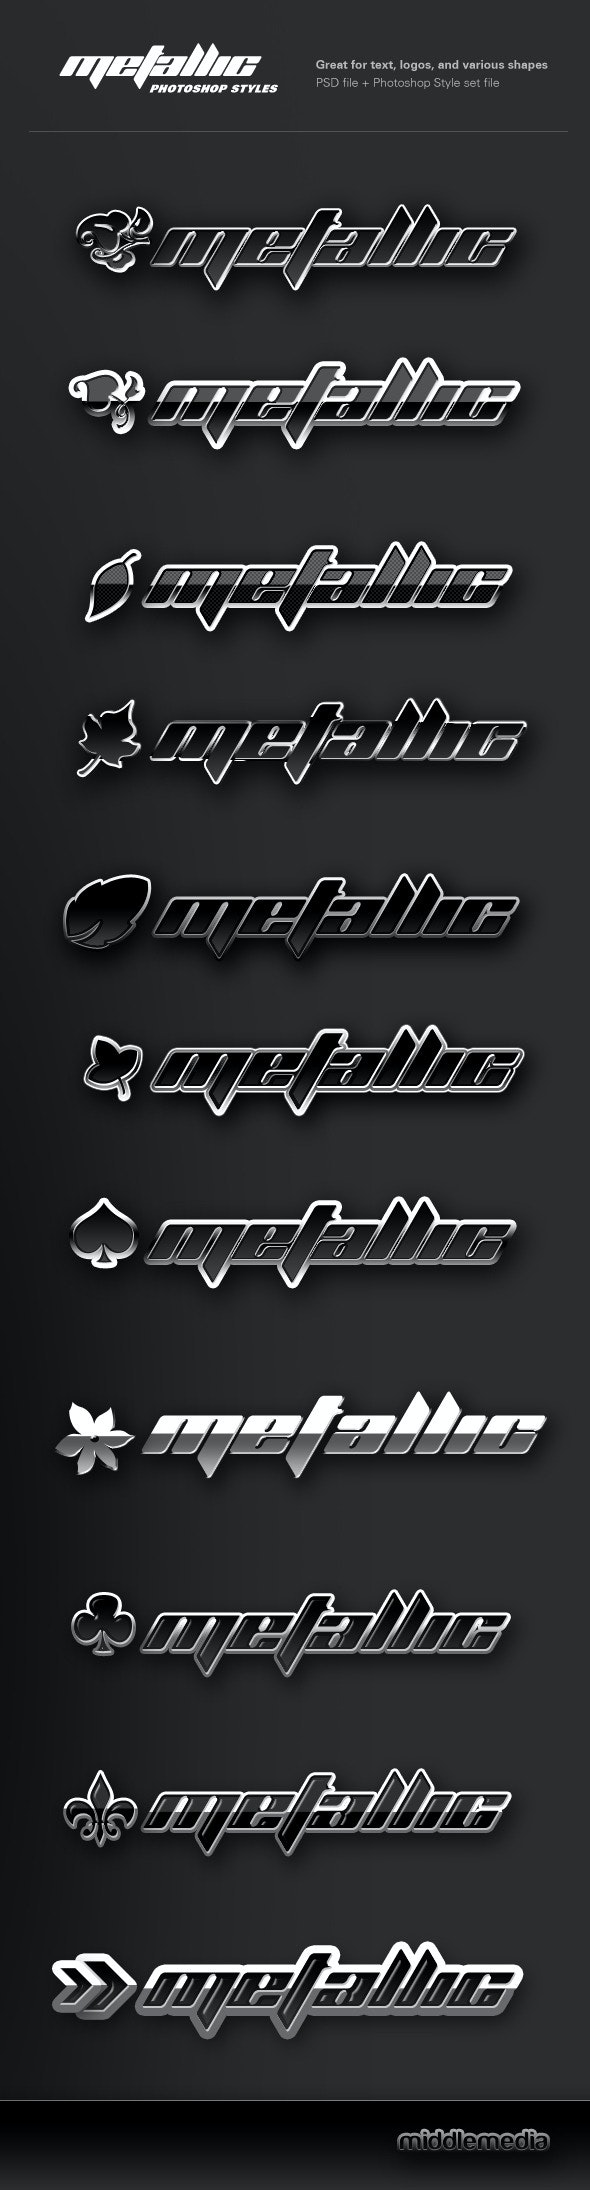 Metallic Chrome Photoshop Styles - Text Effects Styles